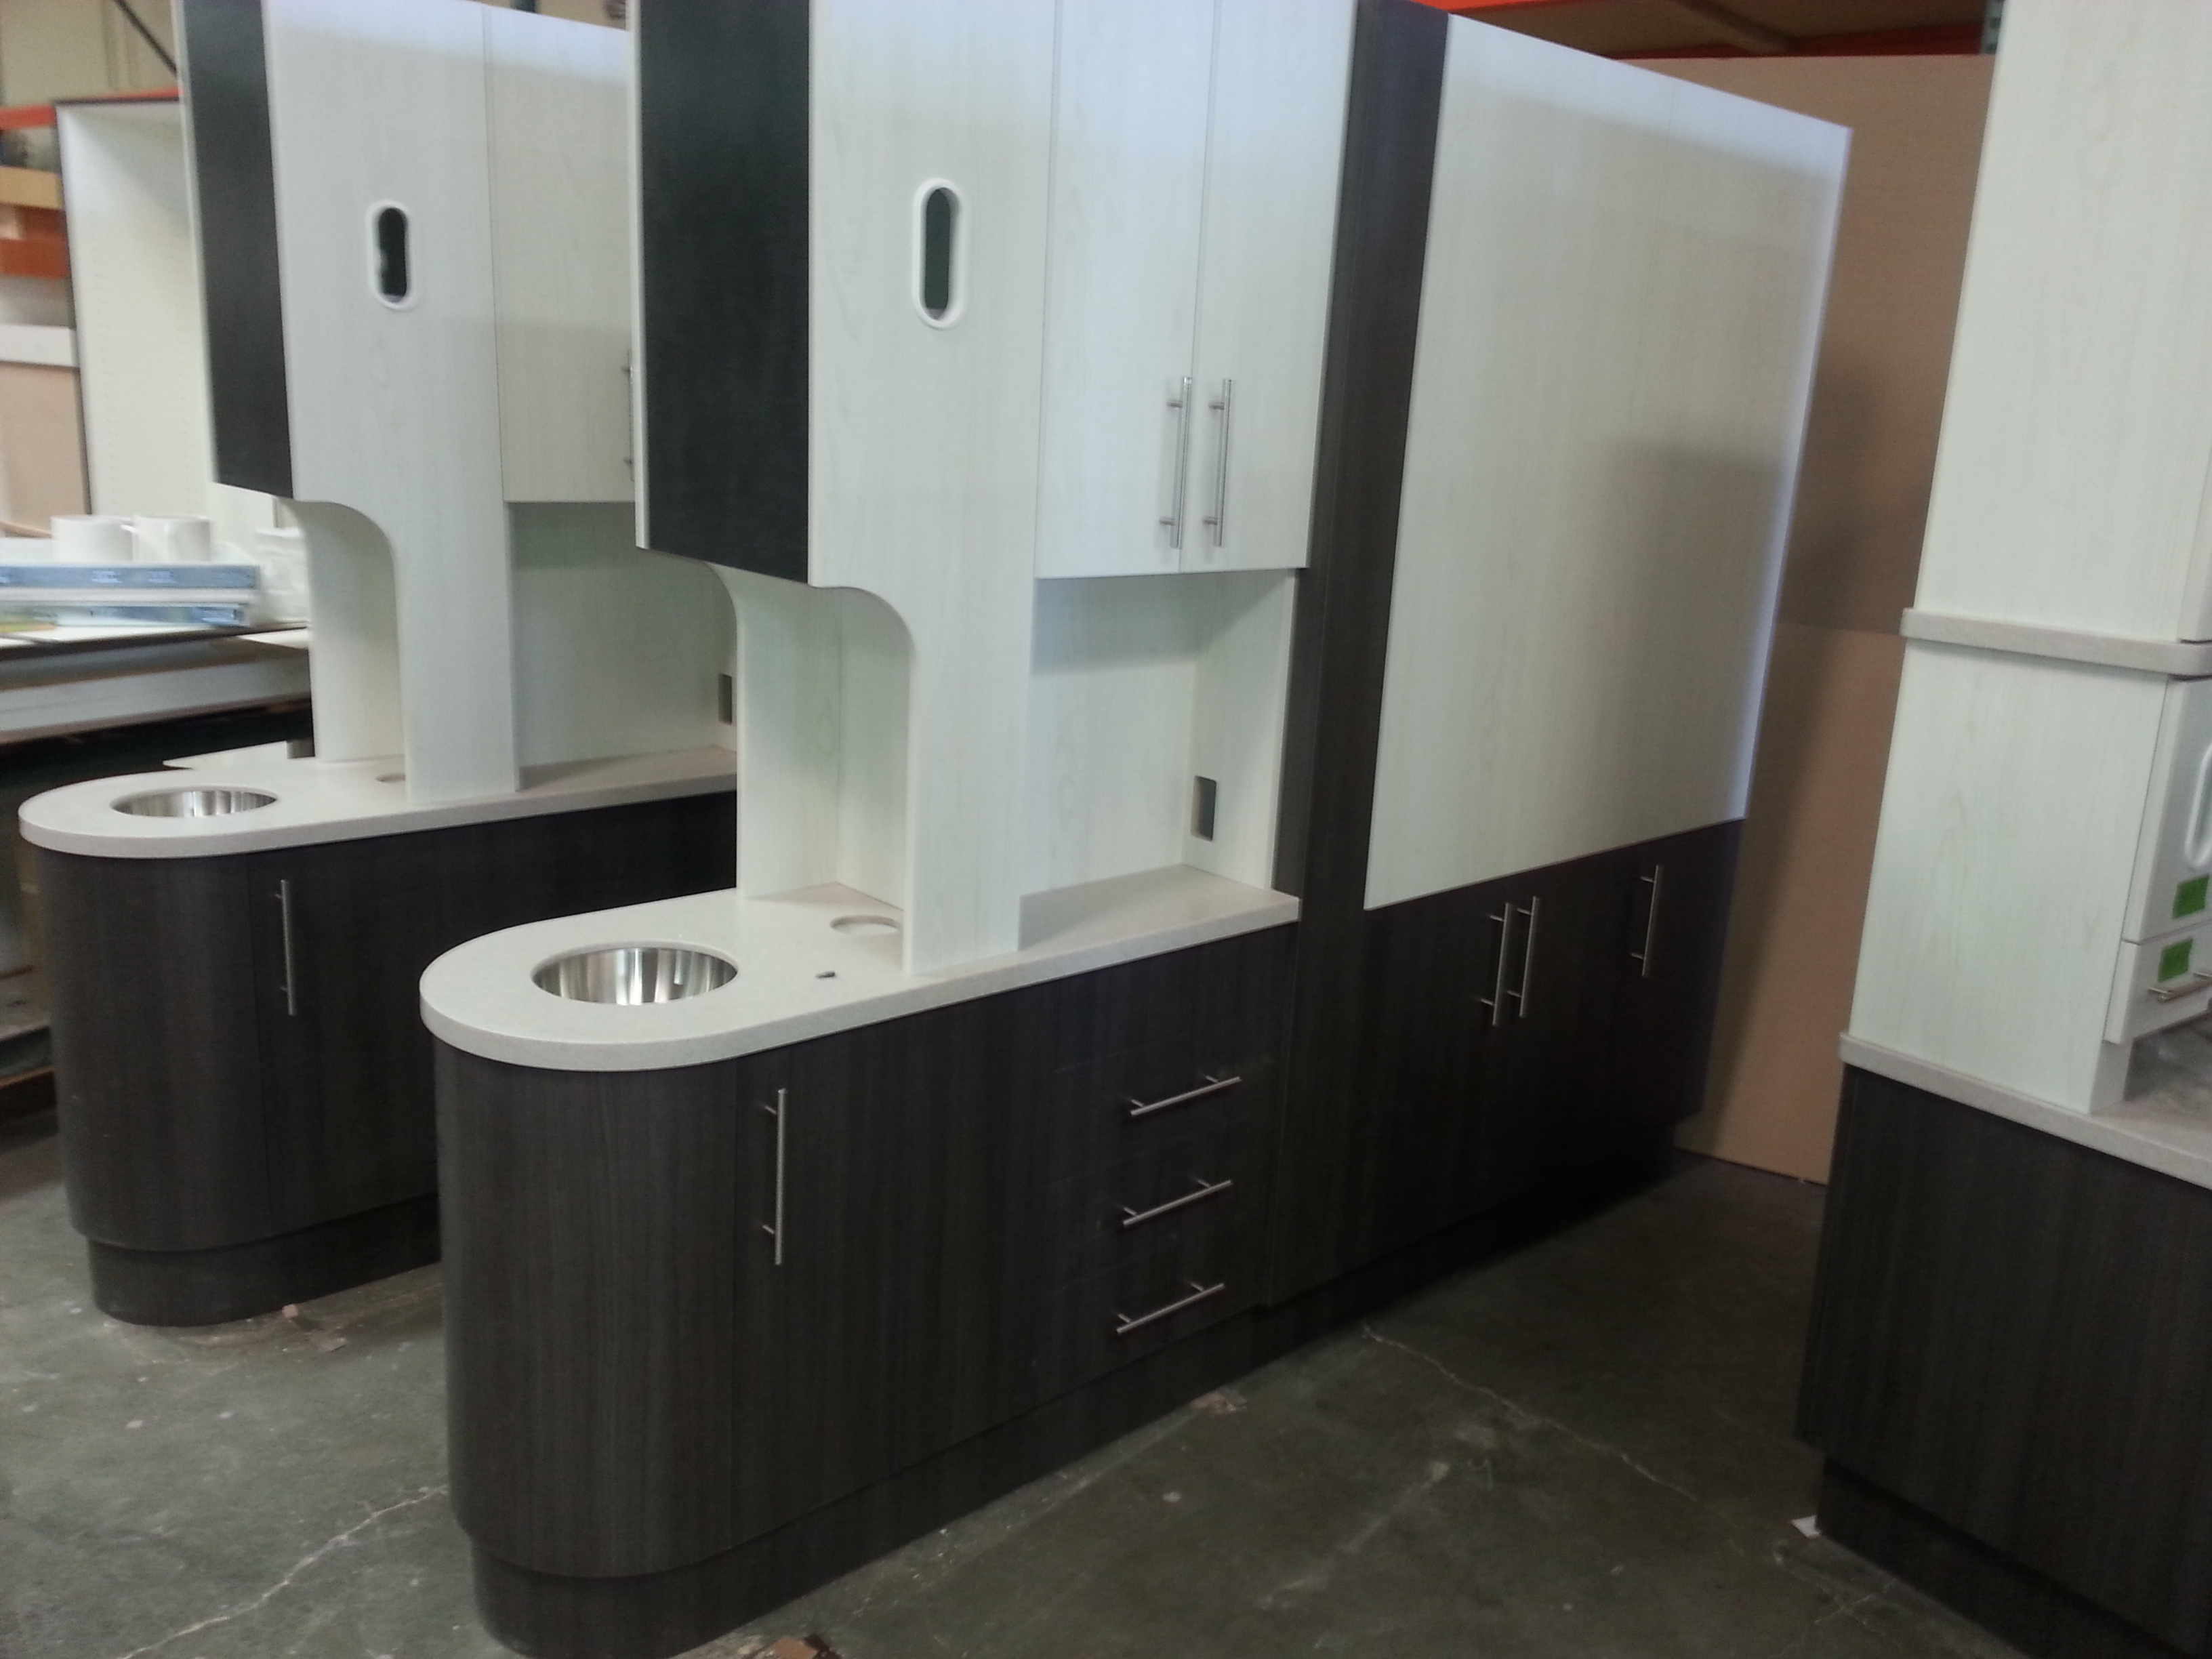 Nk Cabinets Inc Dental Office Center Island Image Proview